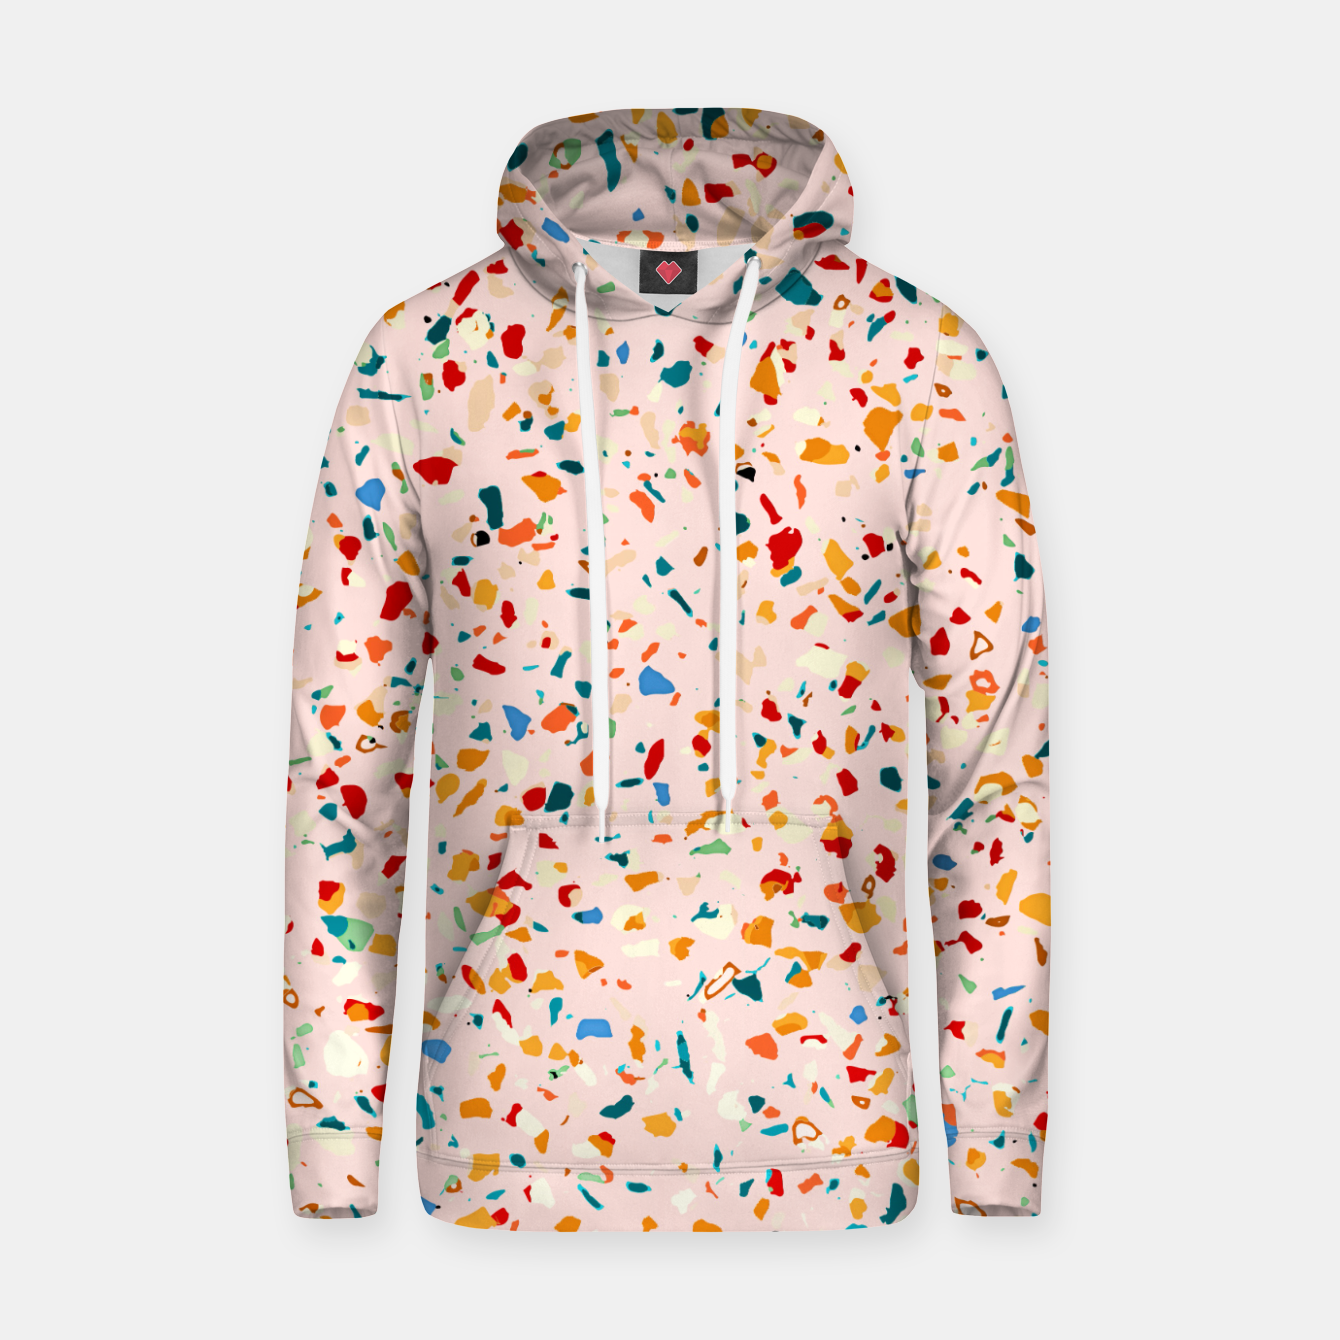 Image of Blush Terrazzo, Eclectic Colorful Abstract Geometrical Shapes Tiles, Pop of Color Graphic Design Hoodie - Live Heroes